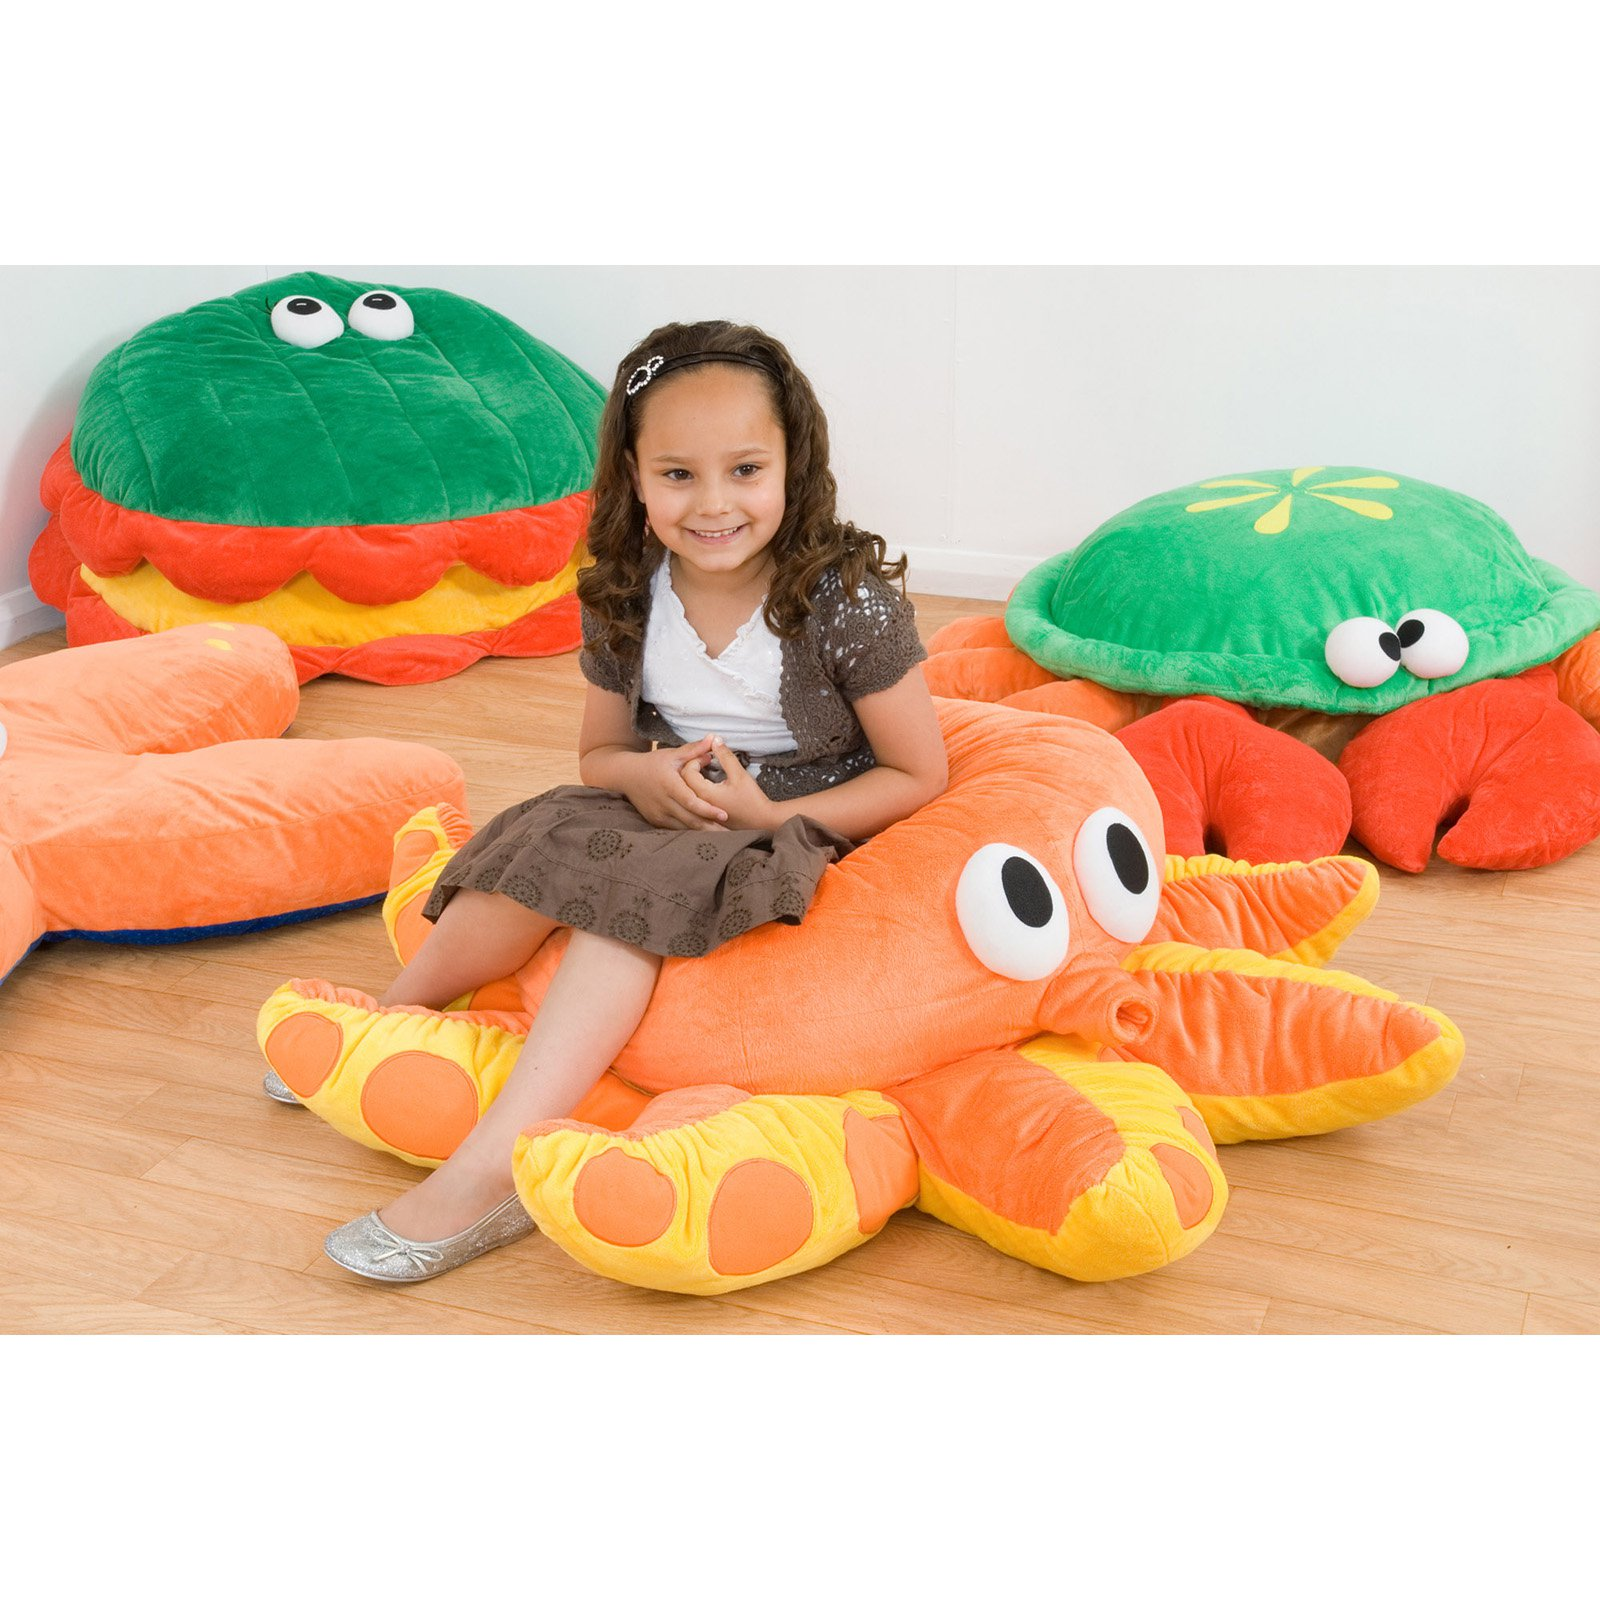 Kalokids Ozzy Octopus Giant Floor Cushion